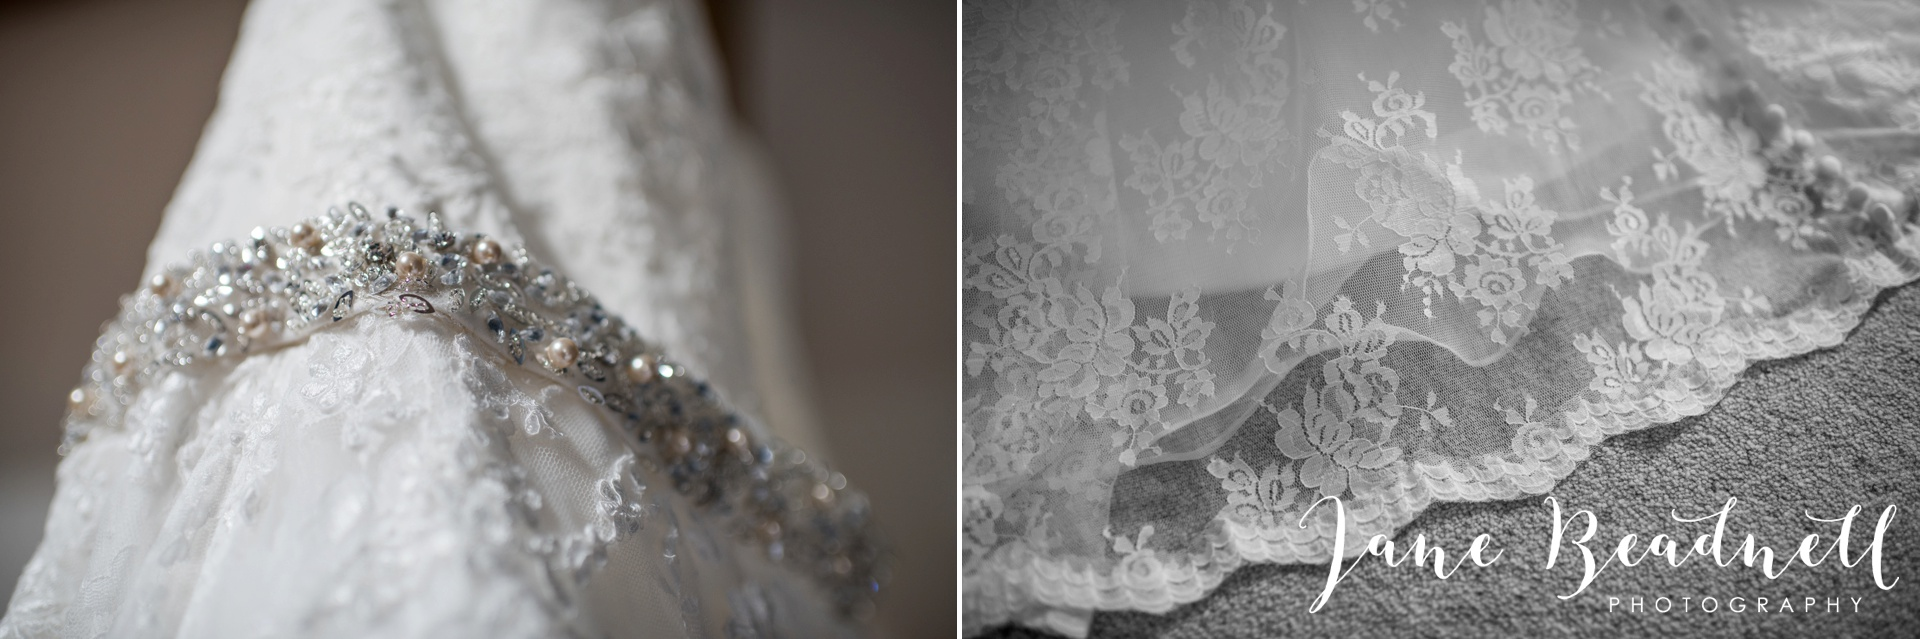 Cracoe Village Hall Wedding Photography by Jane Beadnell Photography fine art wedding photographer Yorkshire_0002